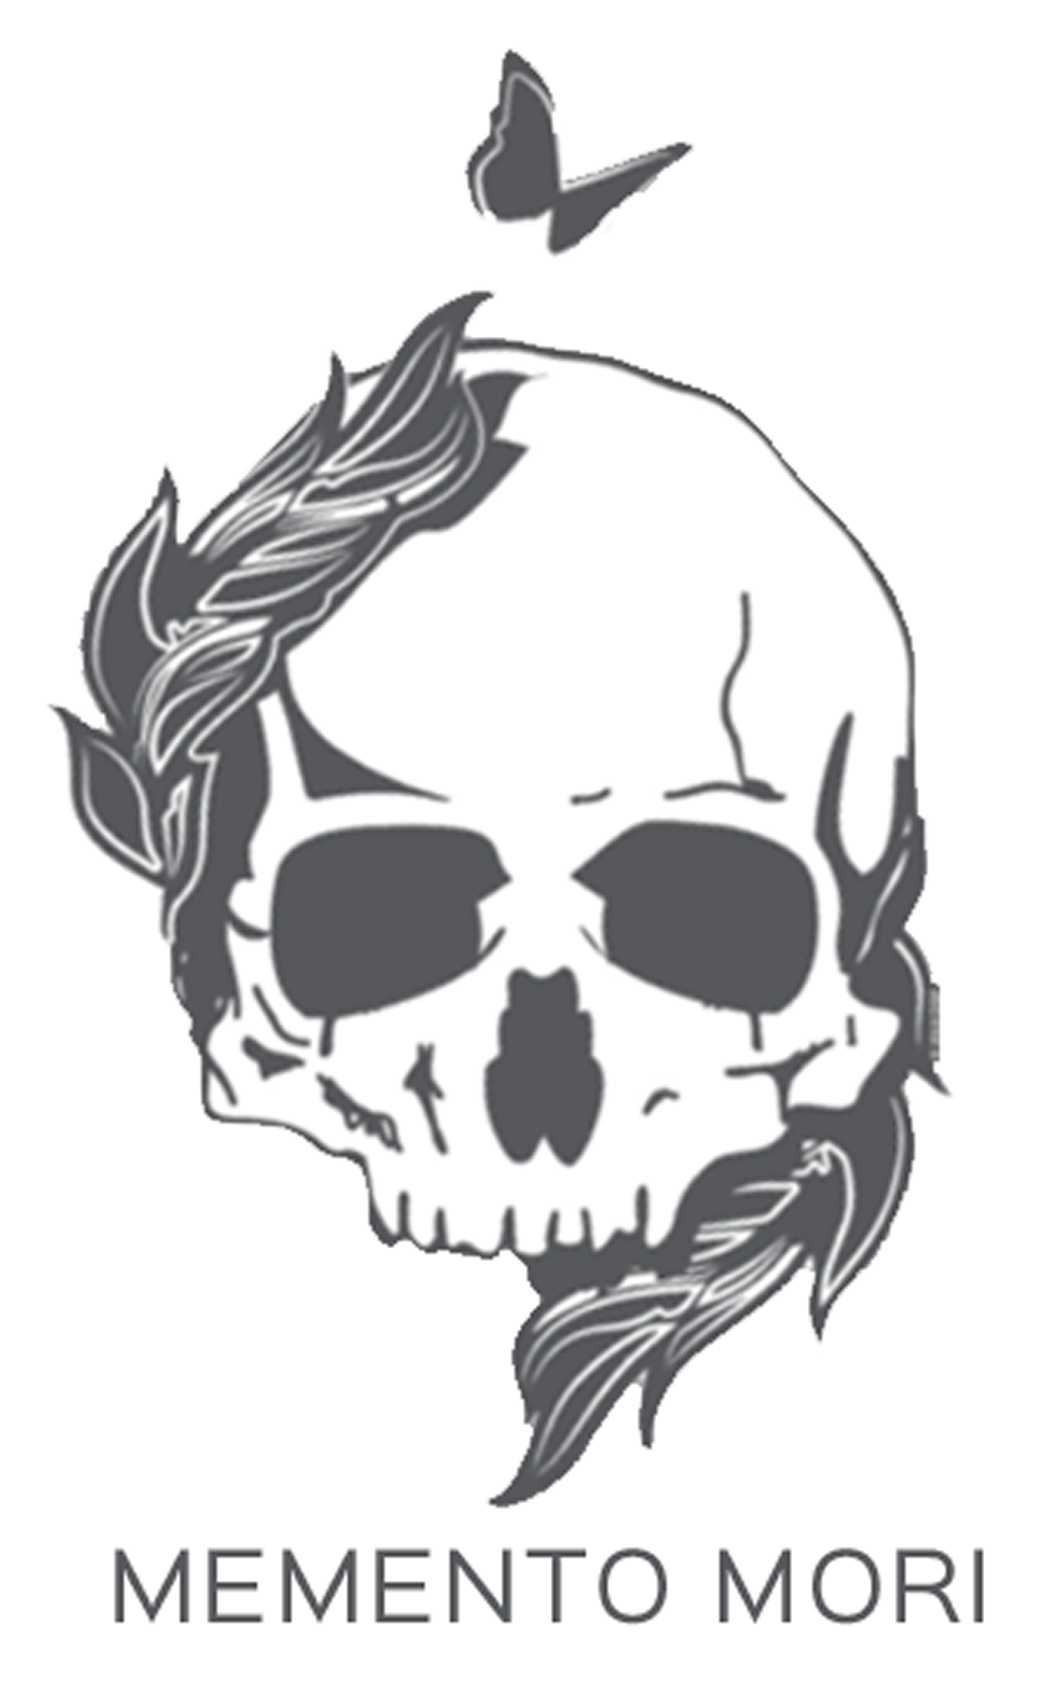 A Memento Mori decal, which can be found on the Pursued by Truth store